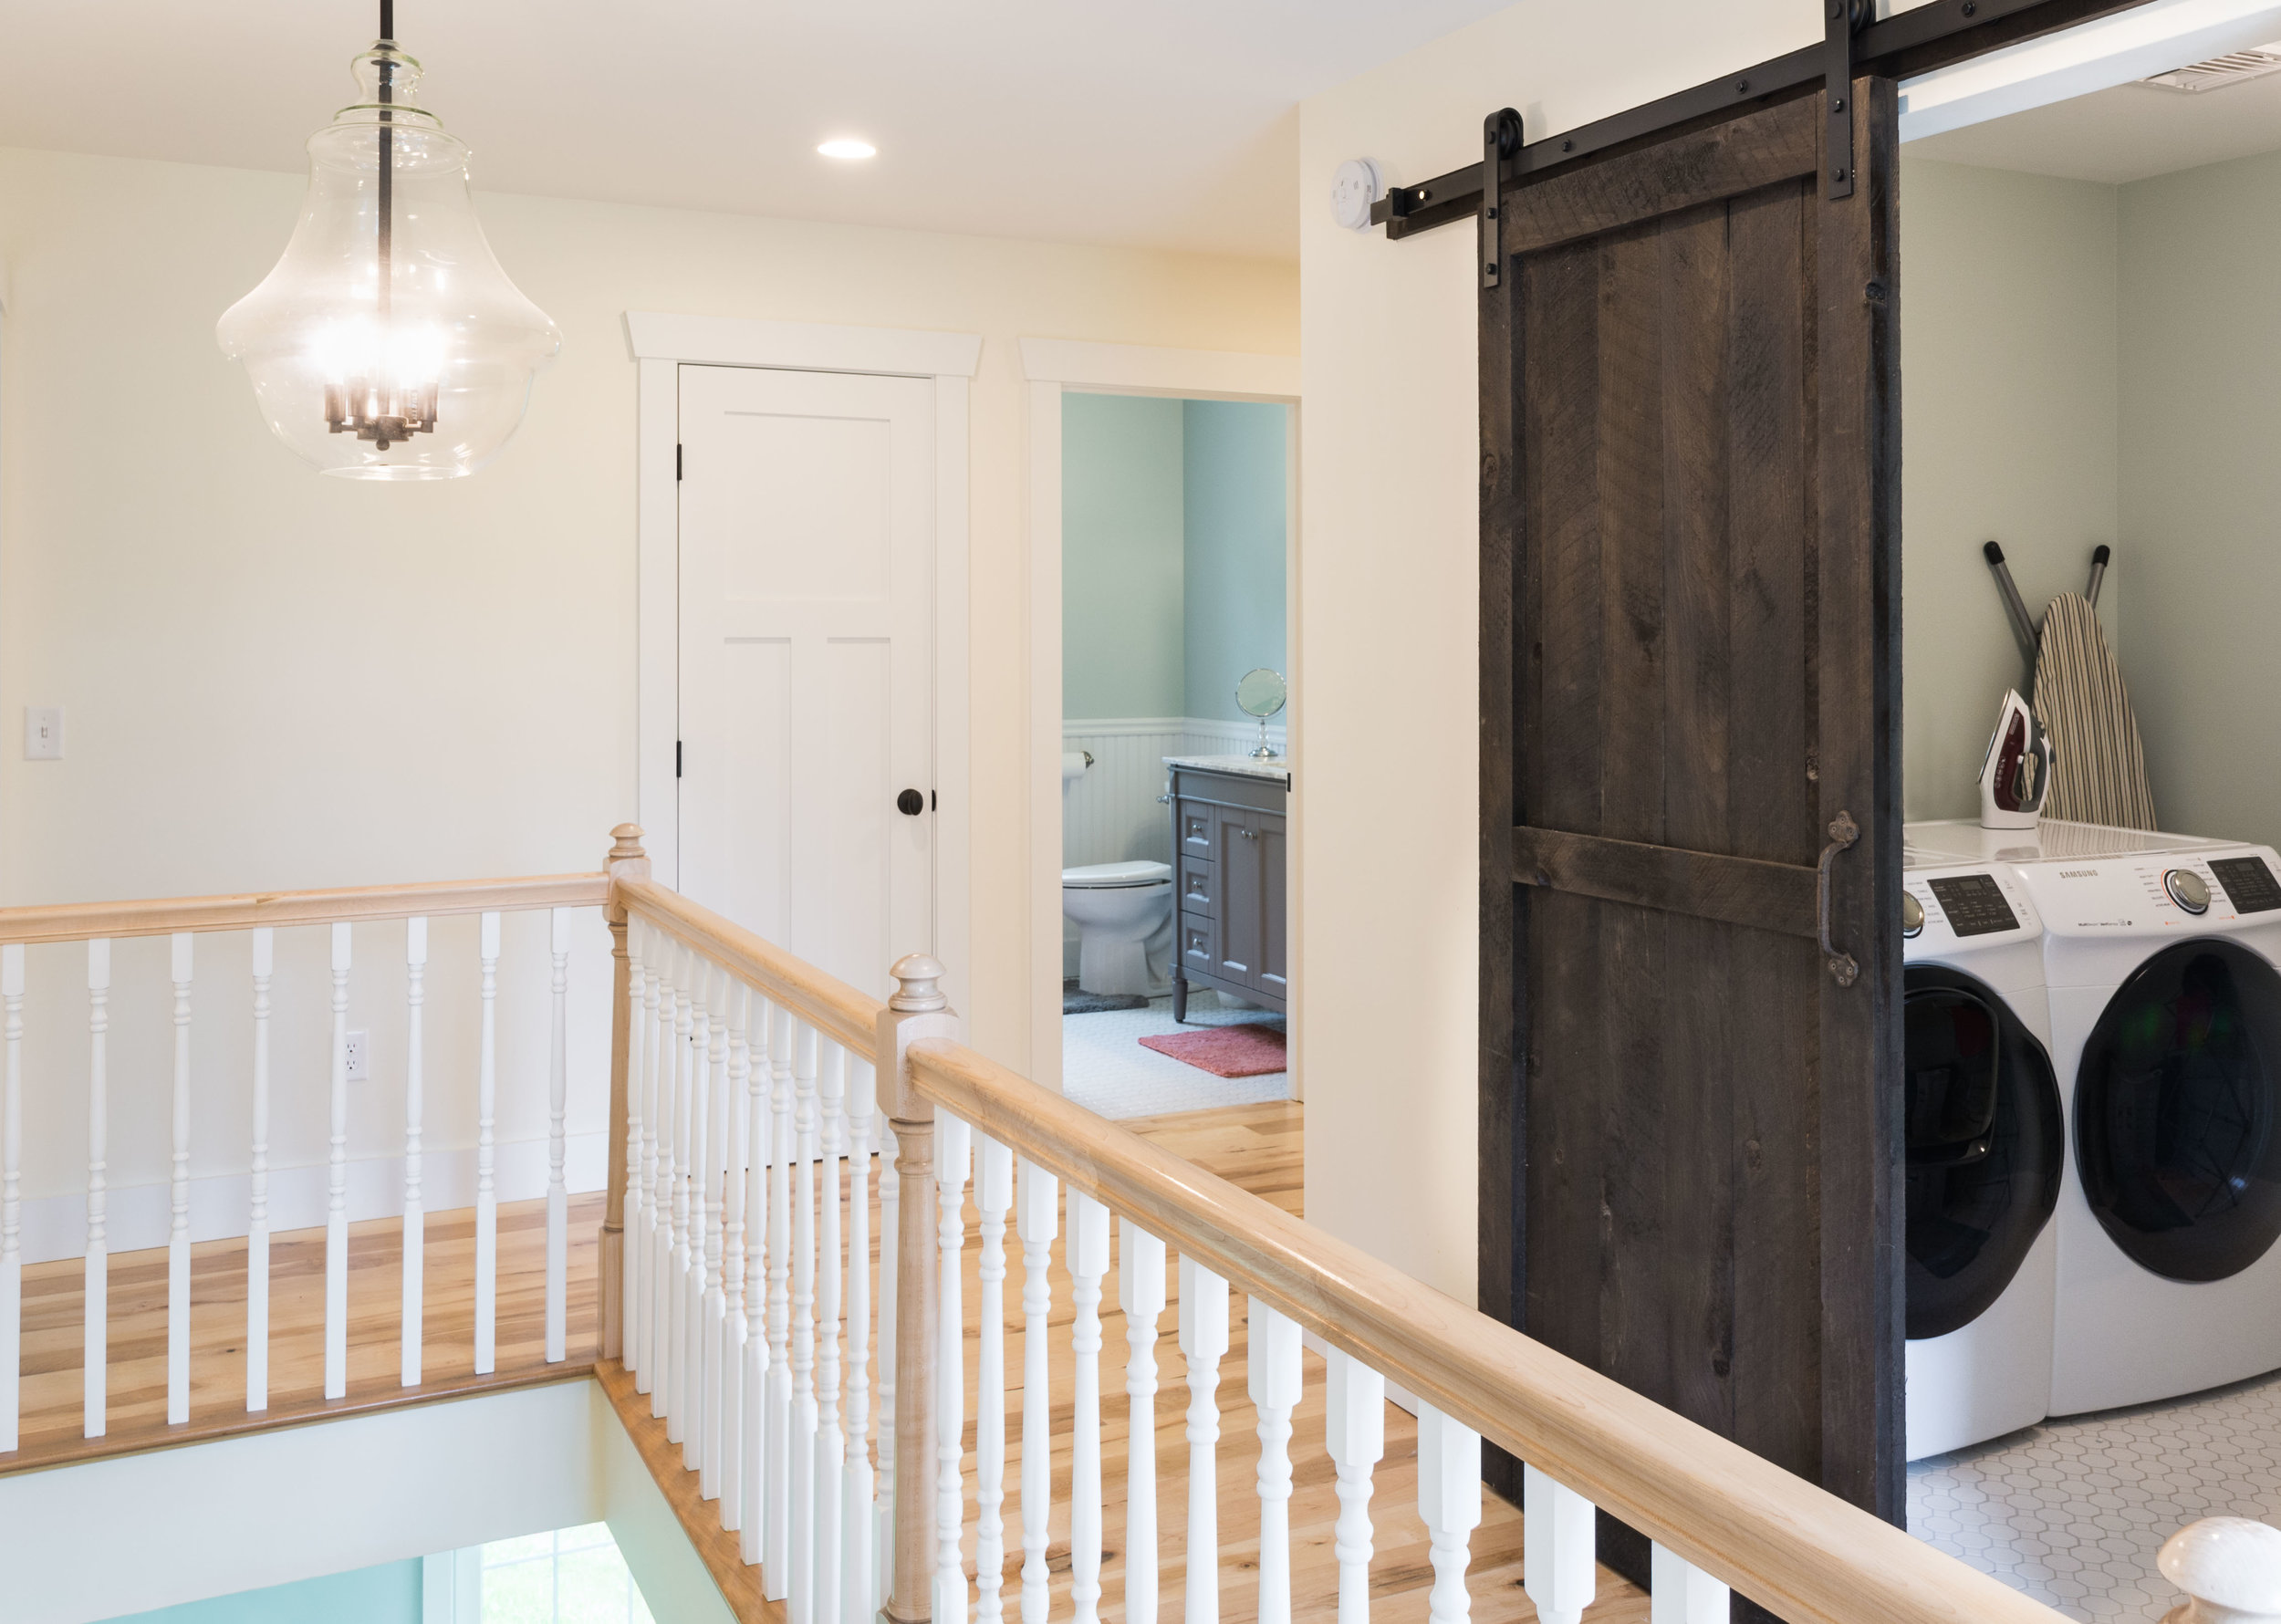 The upstairs laundry room can be hidden by a sliding barn door, stained in a dark walnut color and constructed by the homeowner.